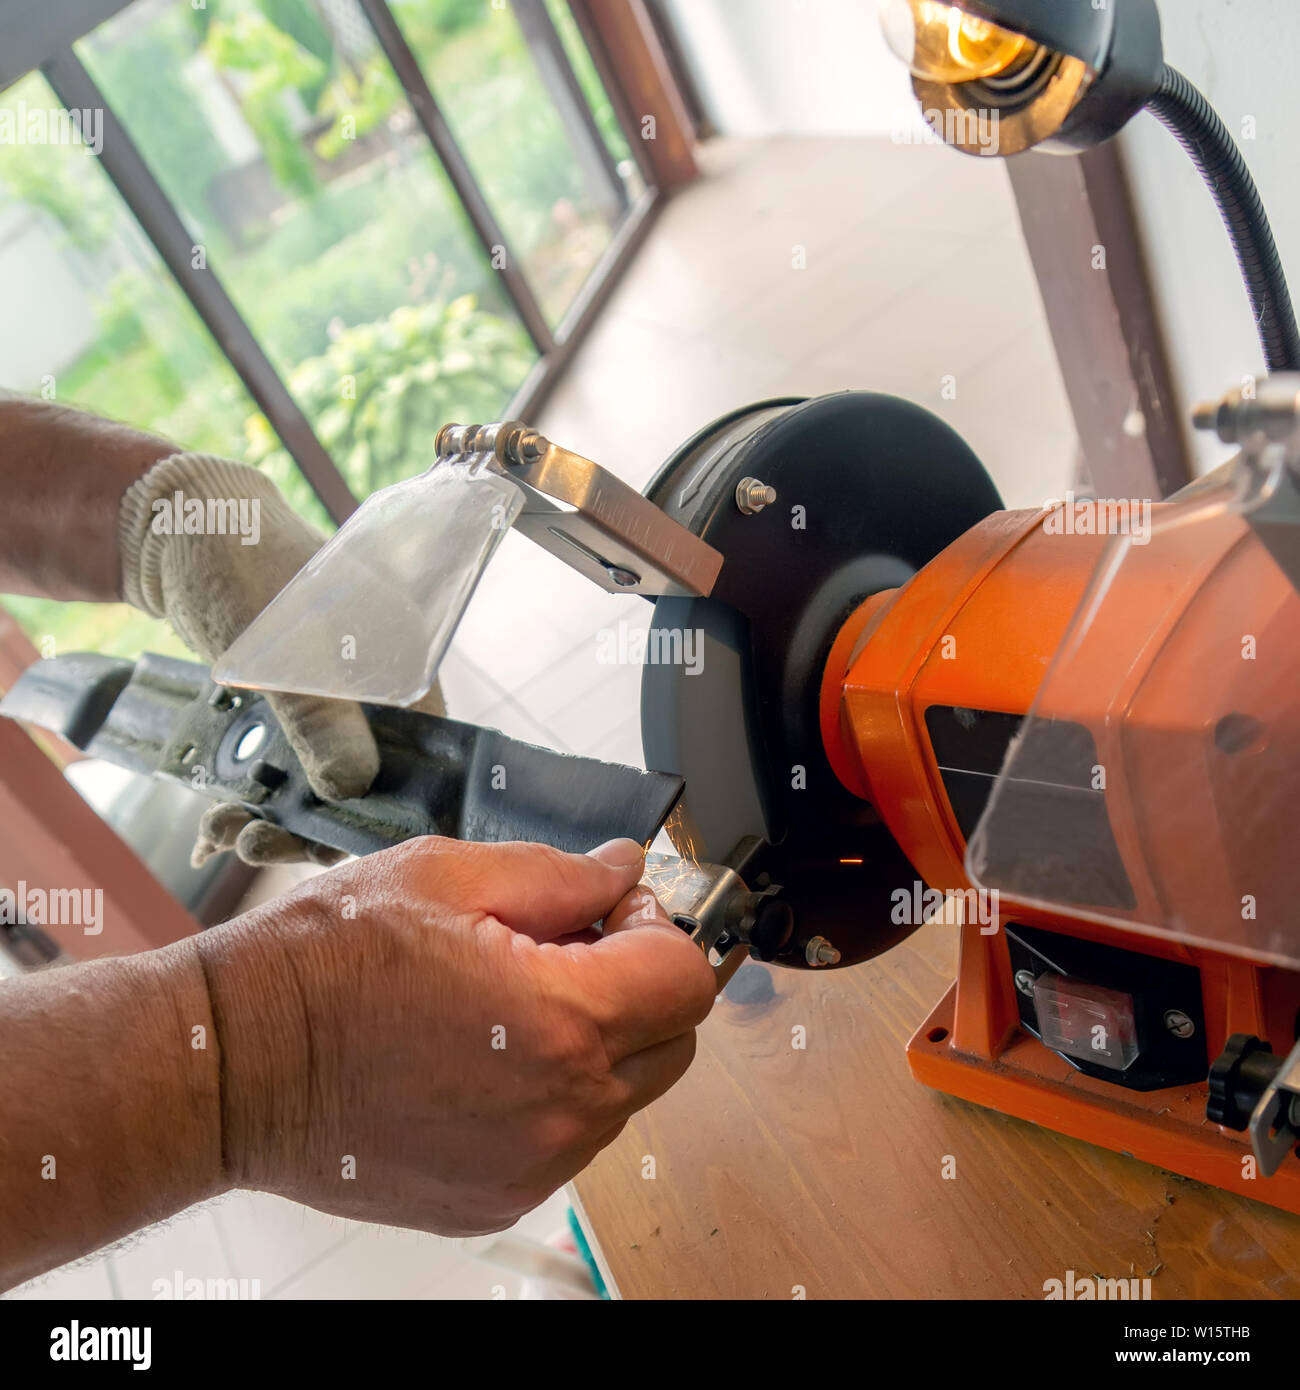 Master sharpens on the machine metal knife lawn mower. The master's hand in white gloves holding metal plate. - Stock Image